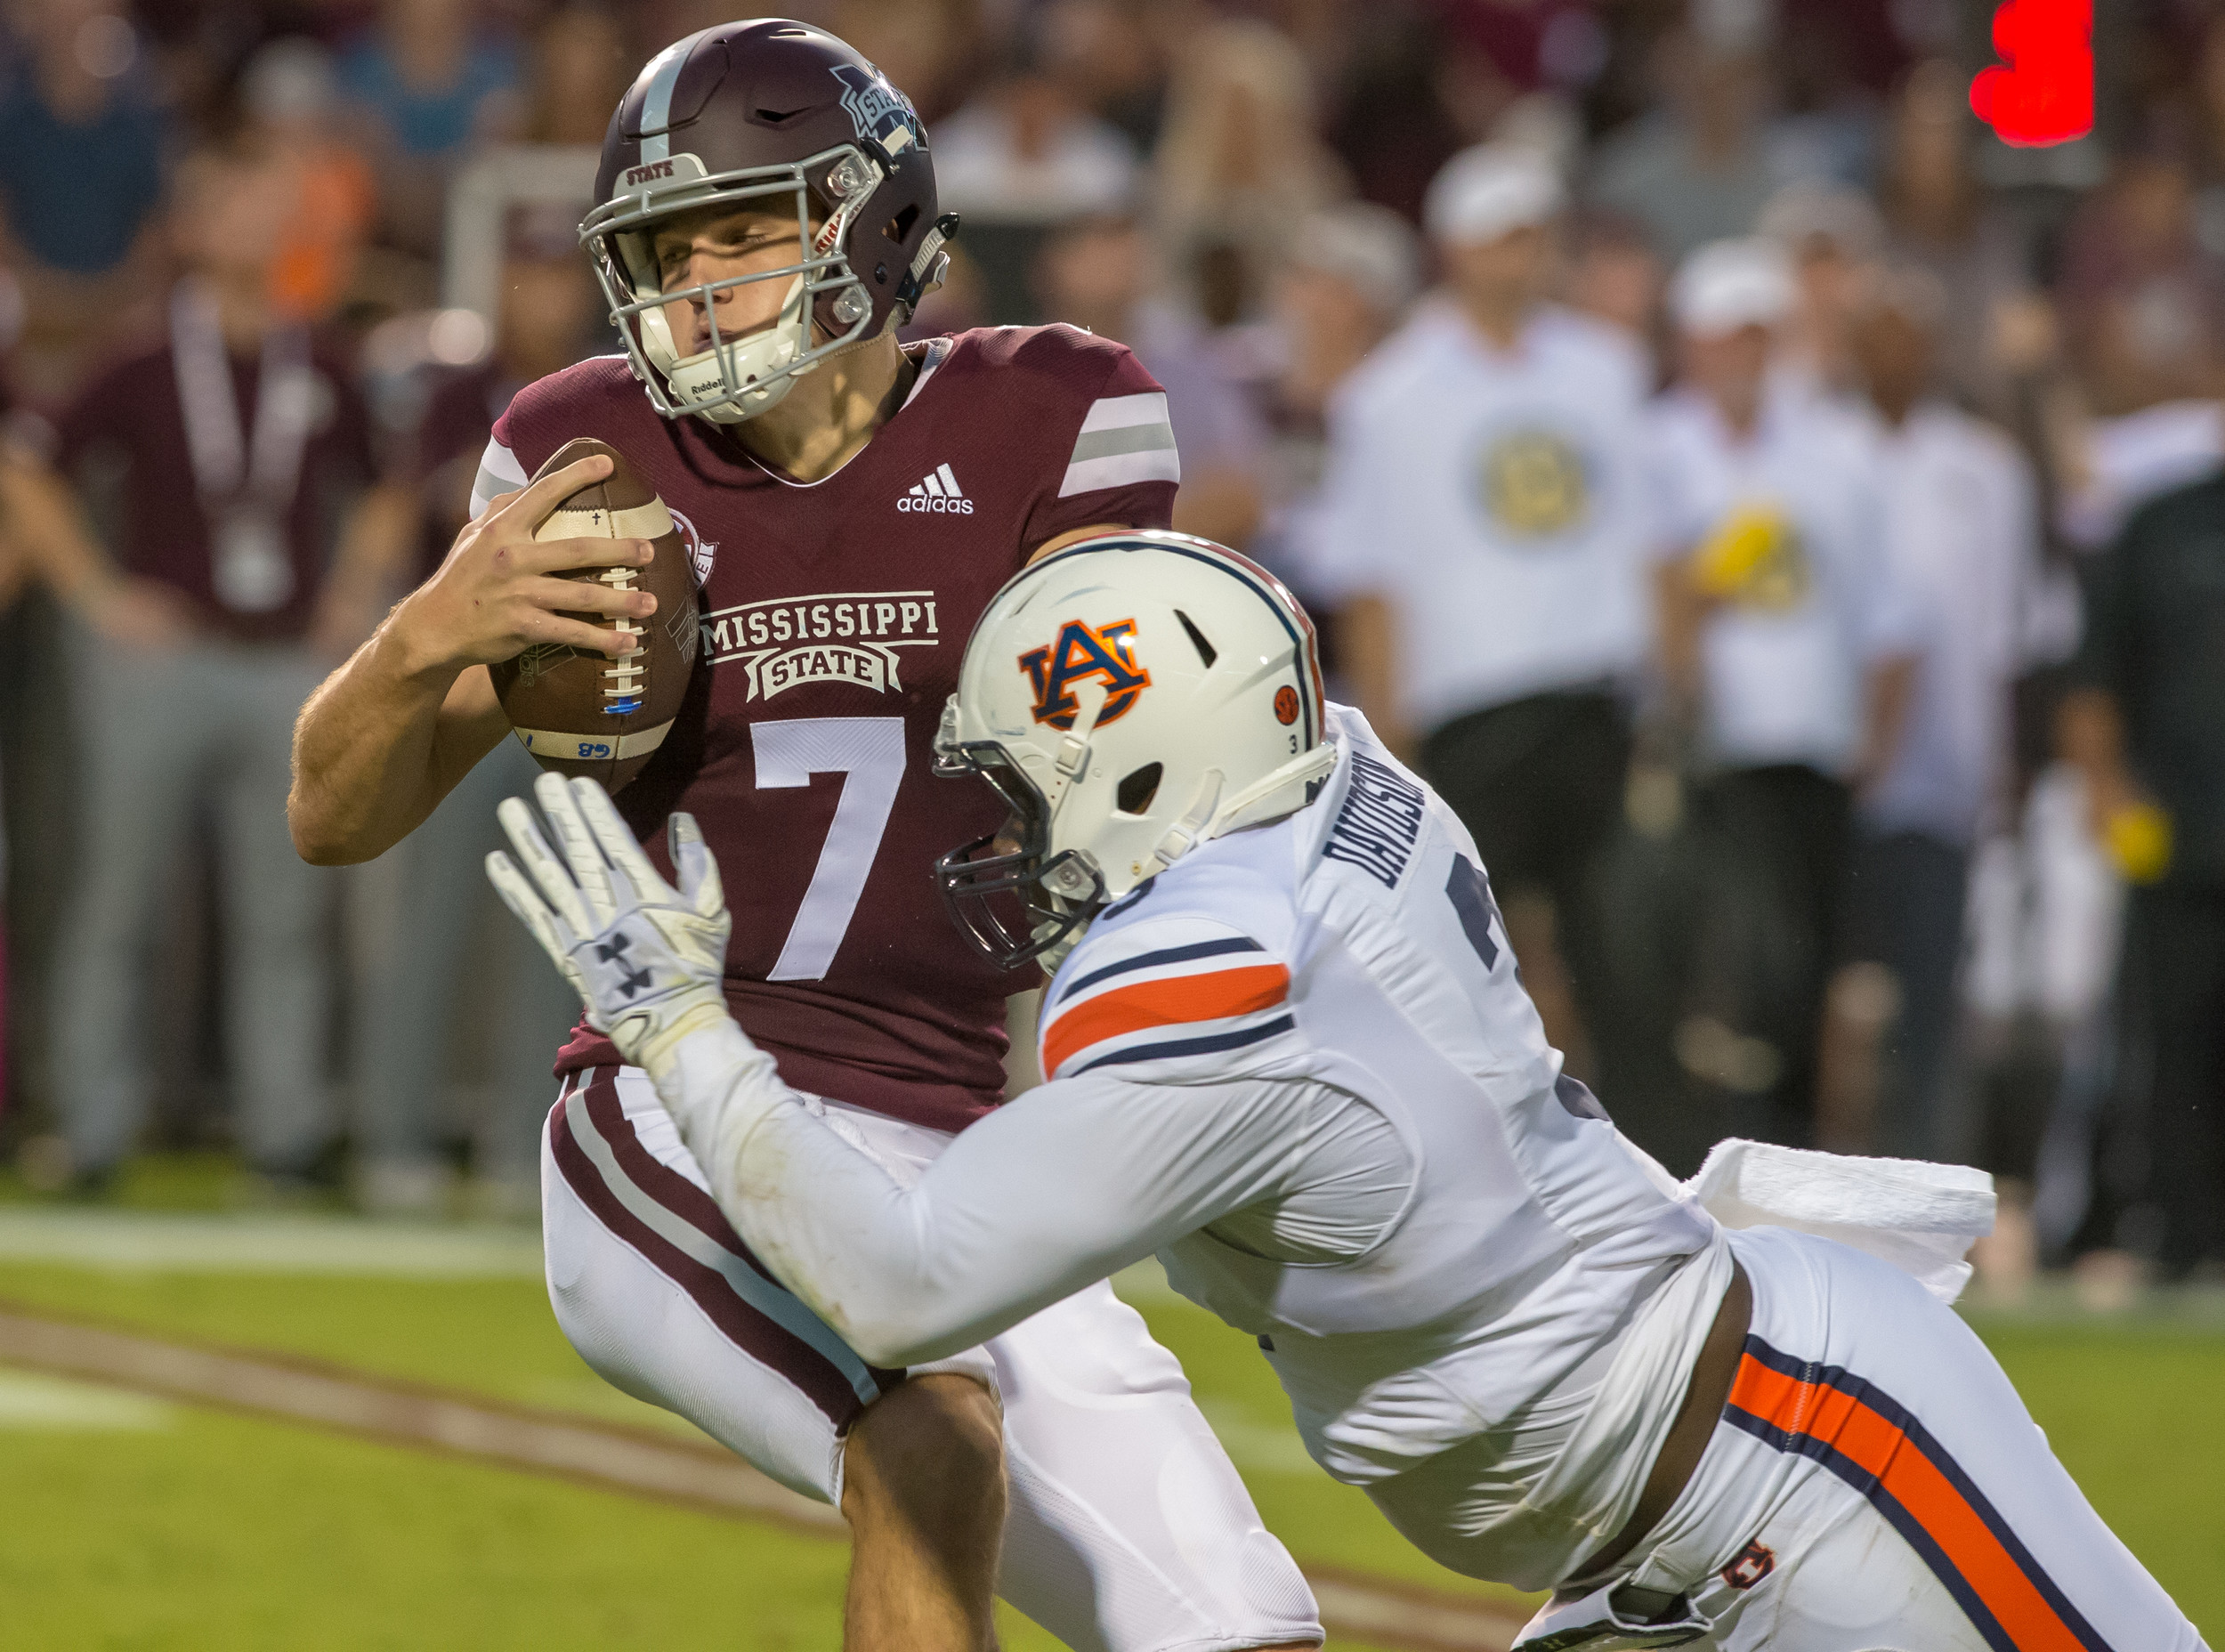 Mississippi State Bulldogs quarterback Nick Fitzgerald (7) escapes the grasp of Auburn Tigers defensive lineman Marlon Davidson (3) during the first half of Saturday's game, at Davis Wade Stadium in Starkville, MS. Daily Mountain Eagle -  Jeff Johnsey